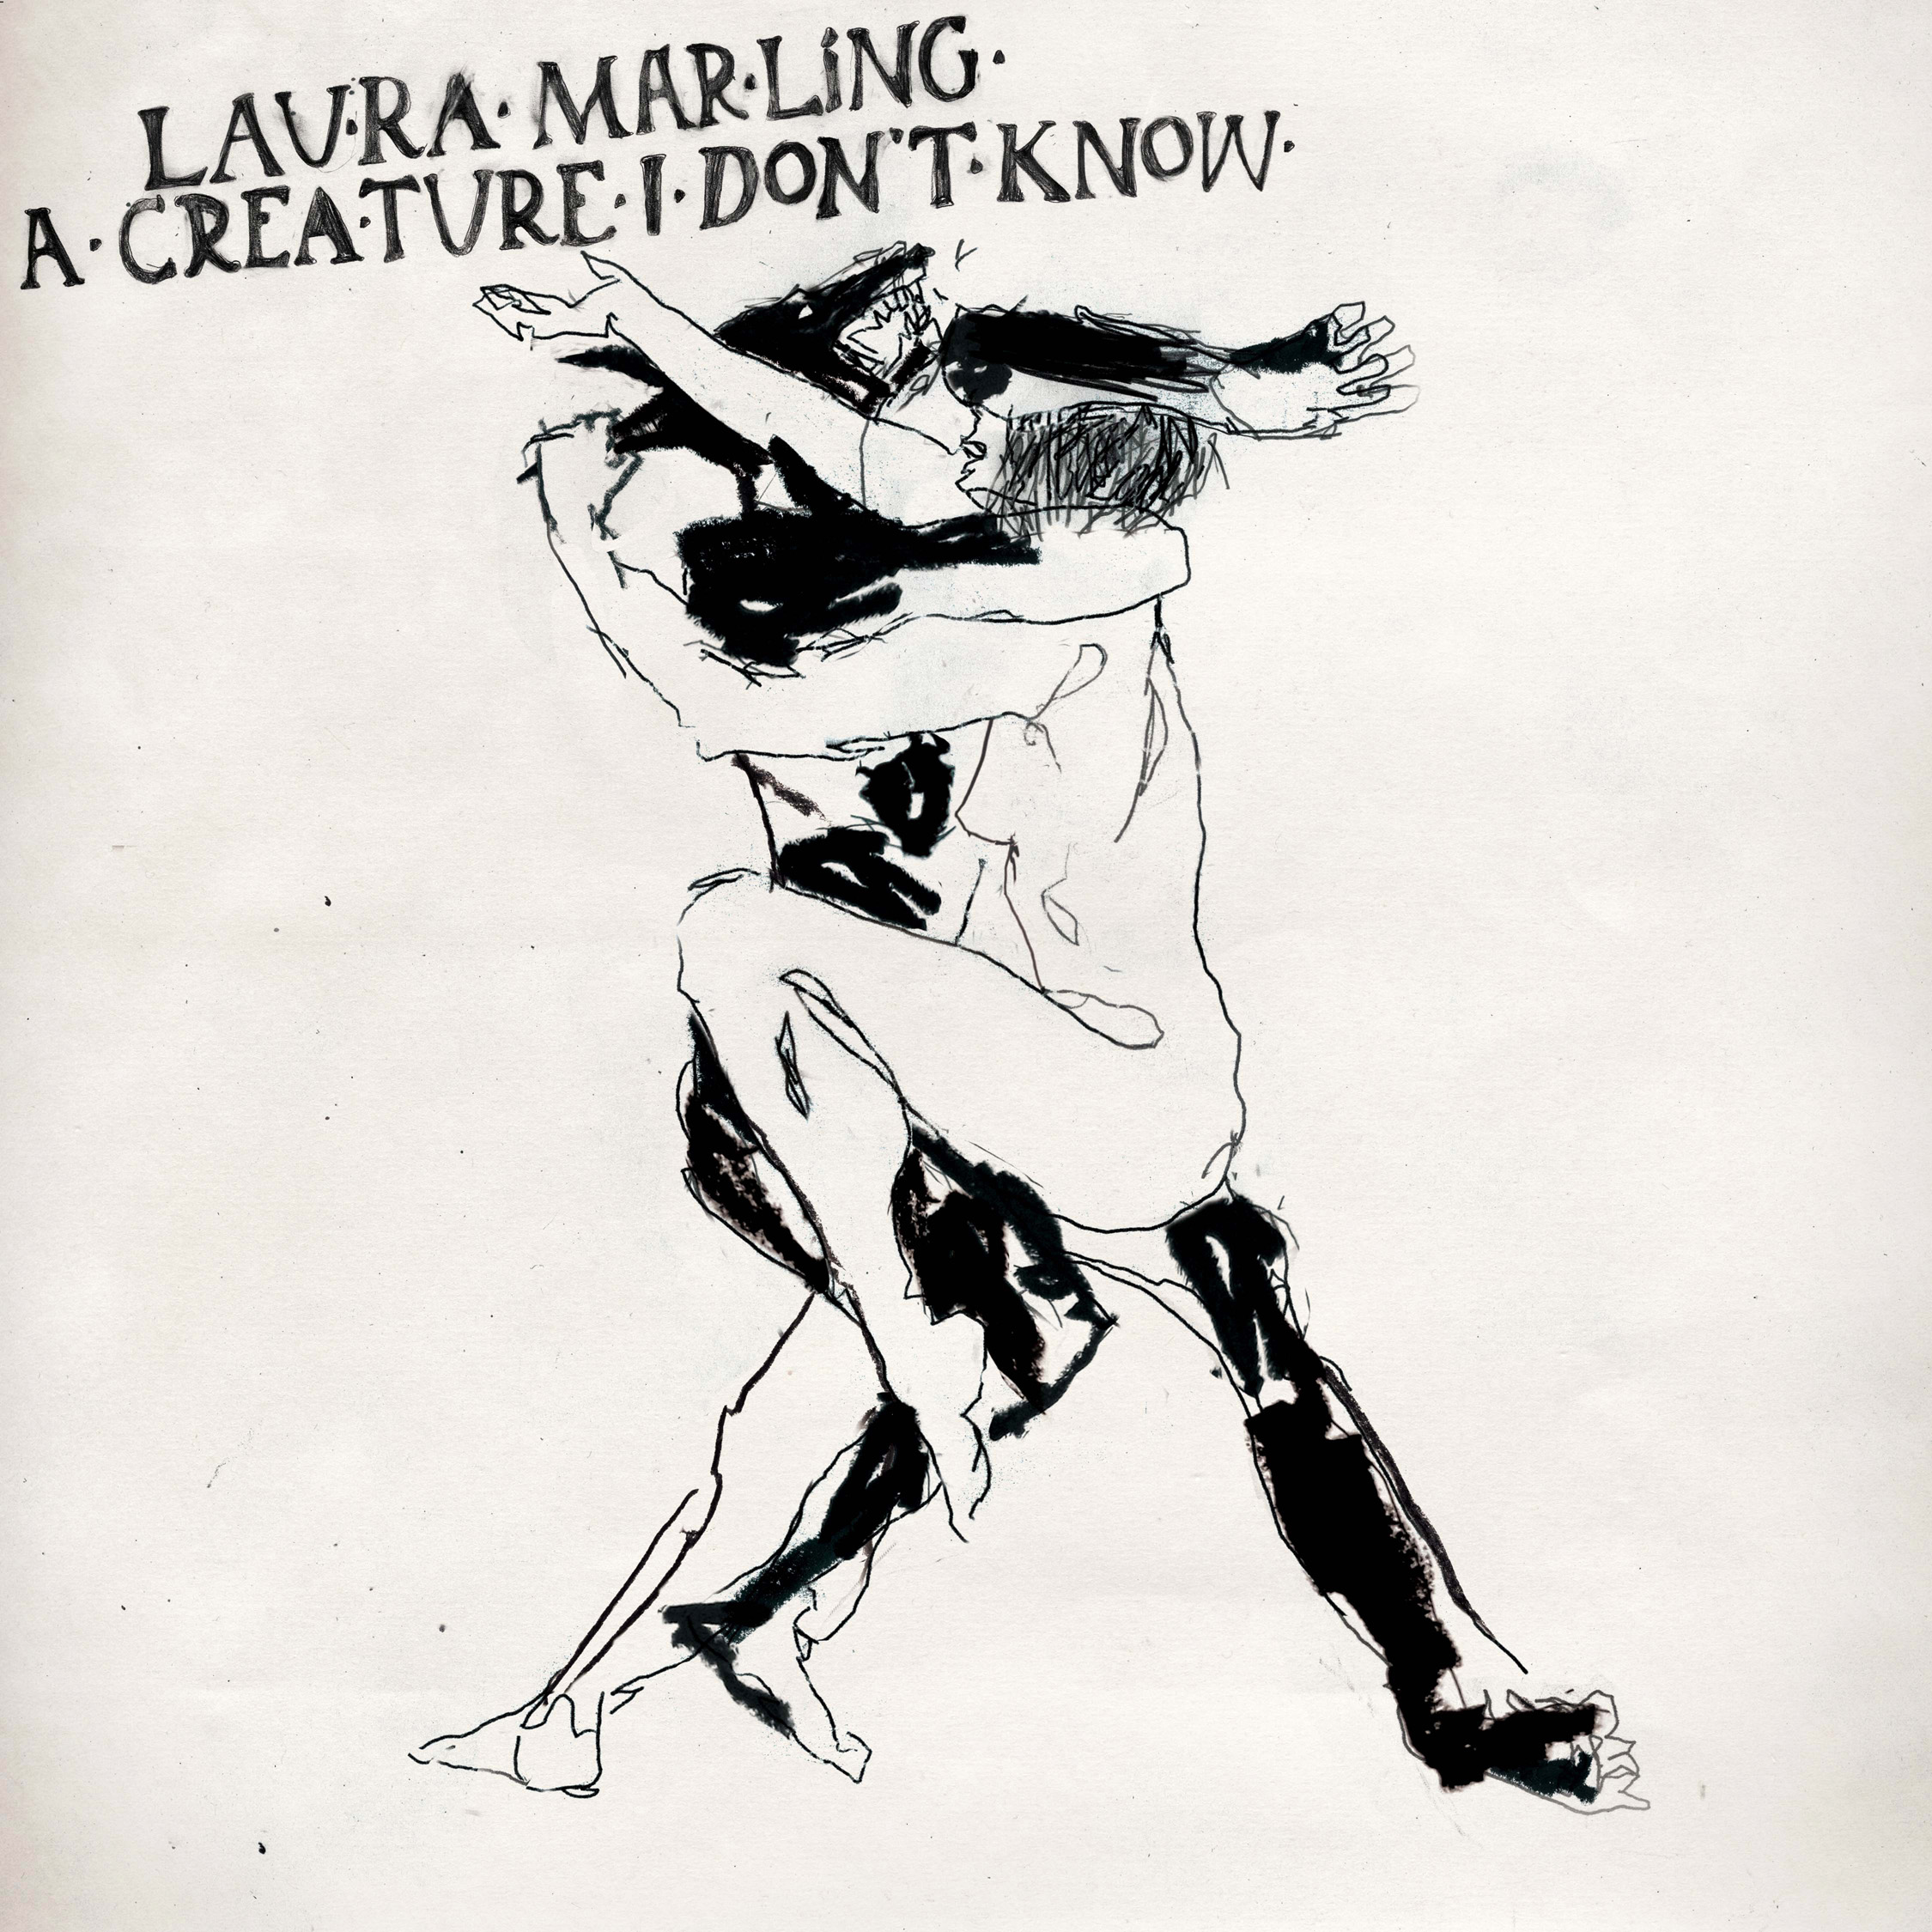 Laura Marling - 'A Creature I Don't Know'